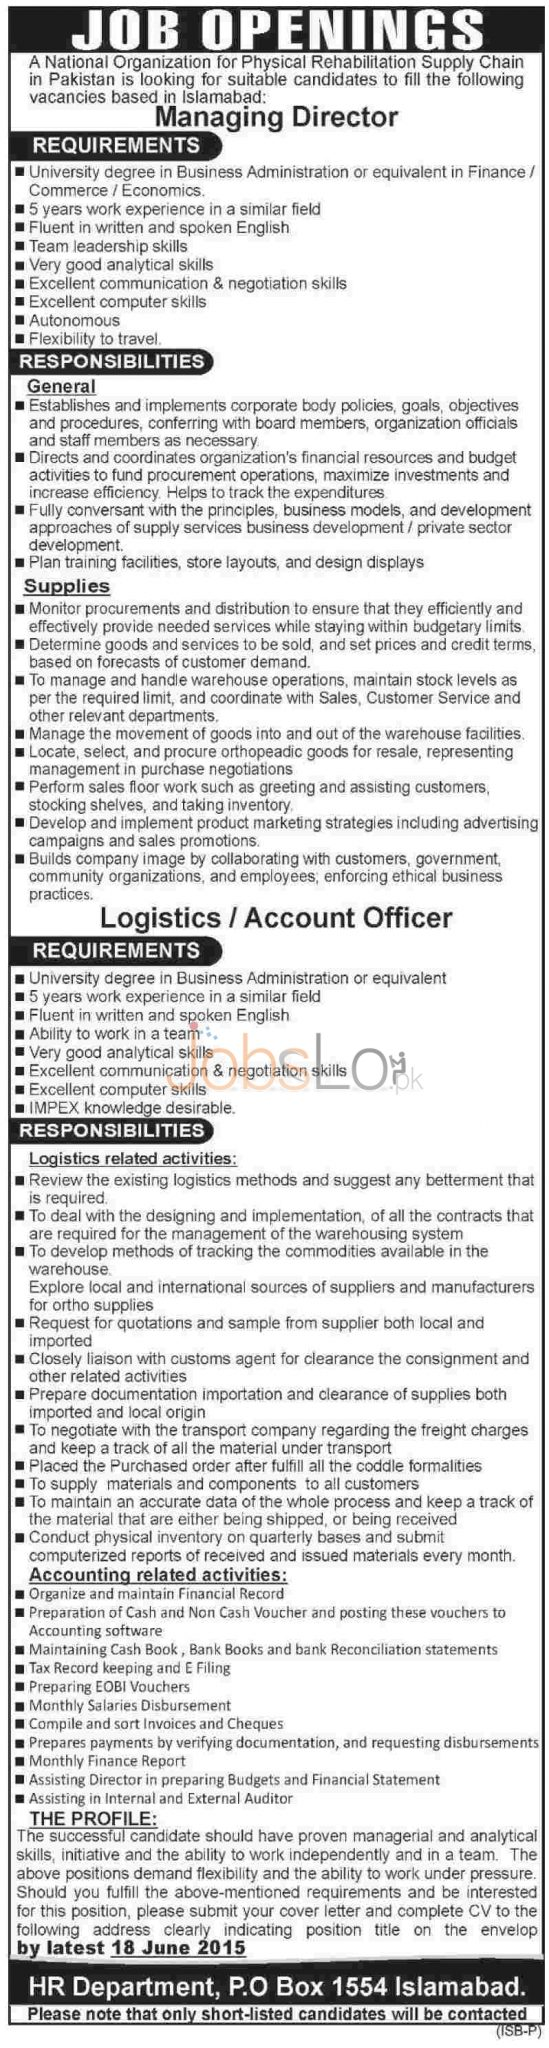 National Organization Jobs